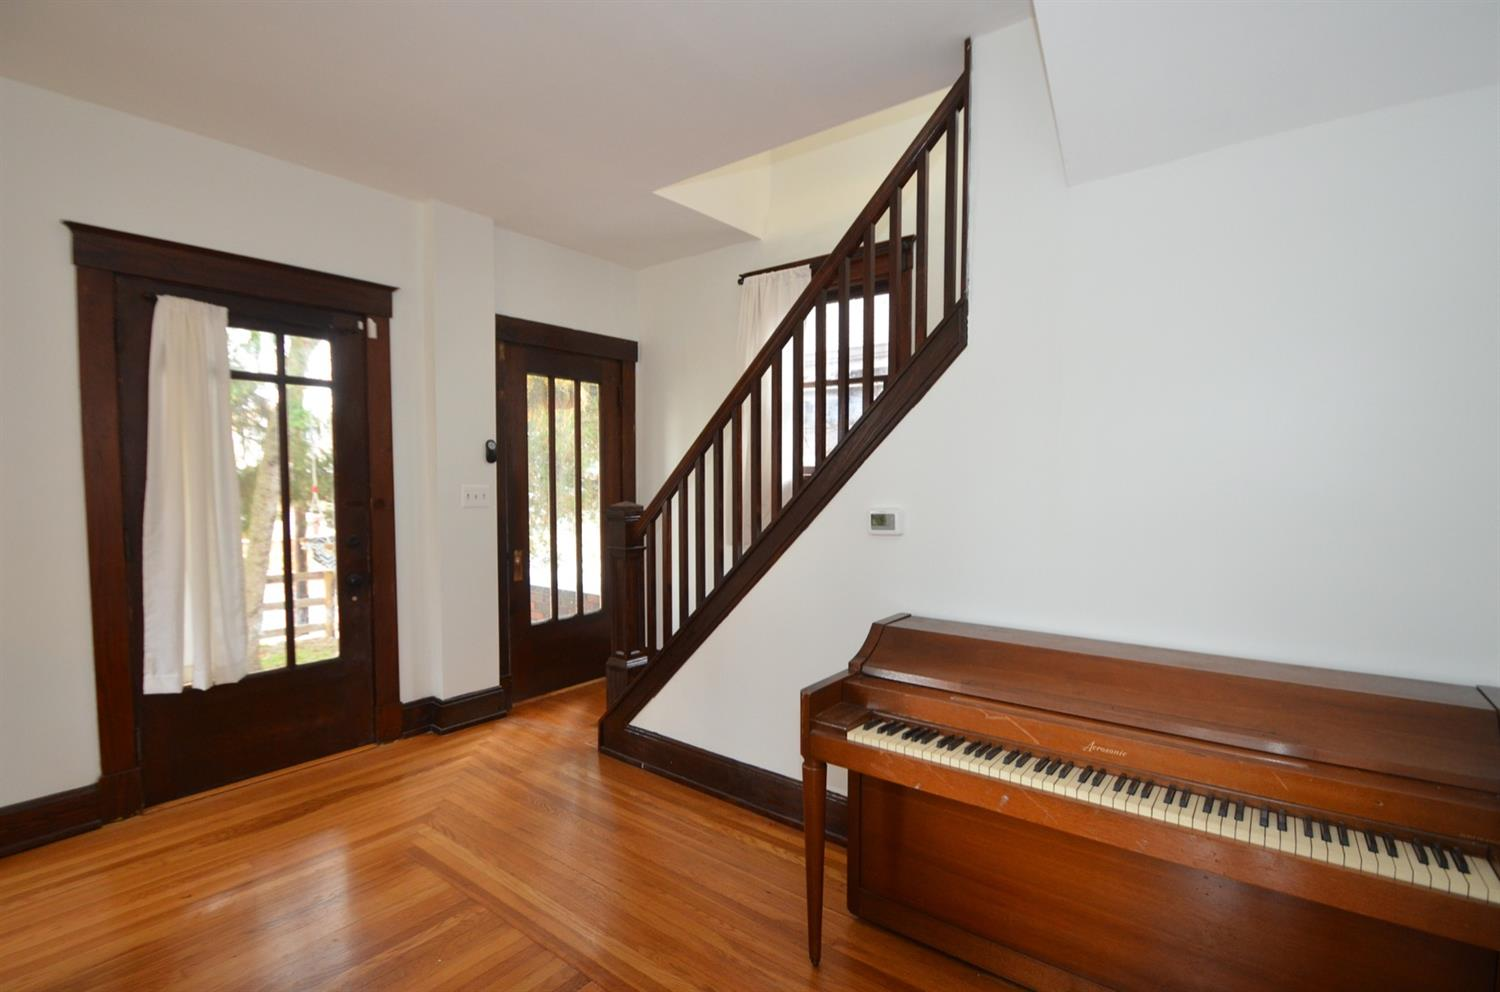 Check out these great Craftsman details and the original picture frame floors.